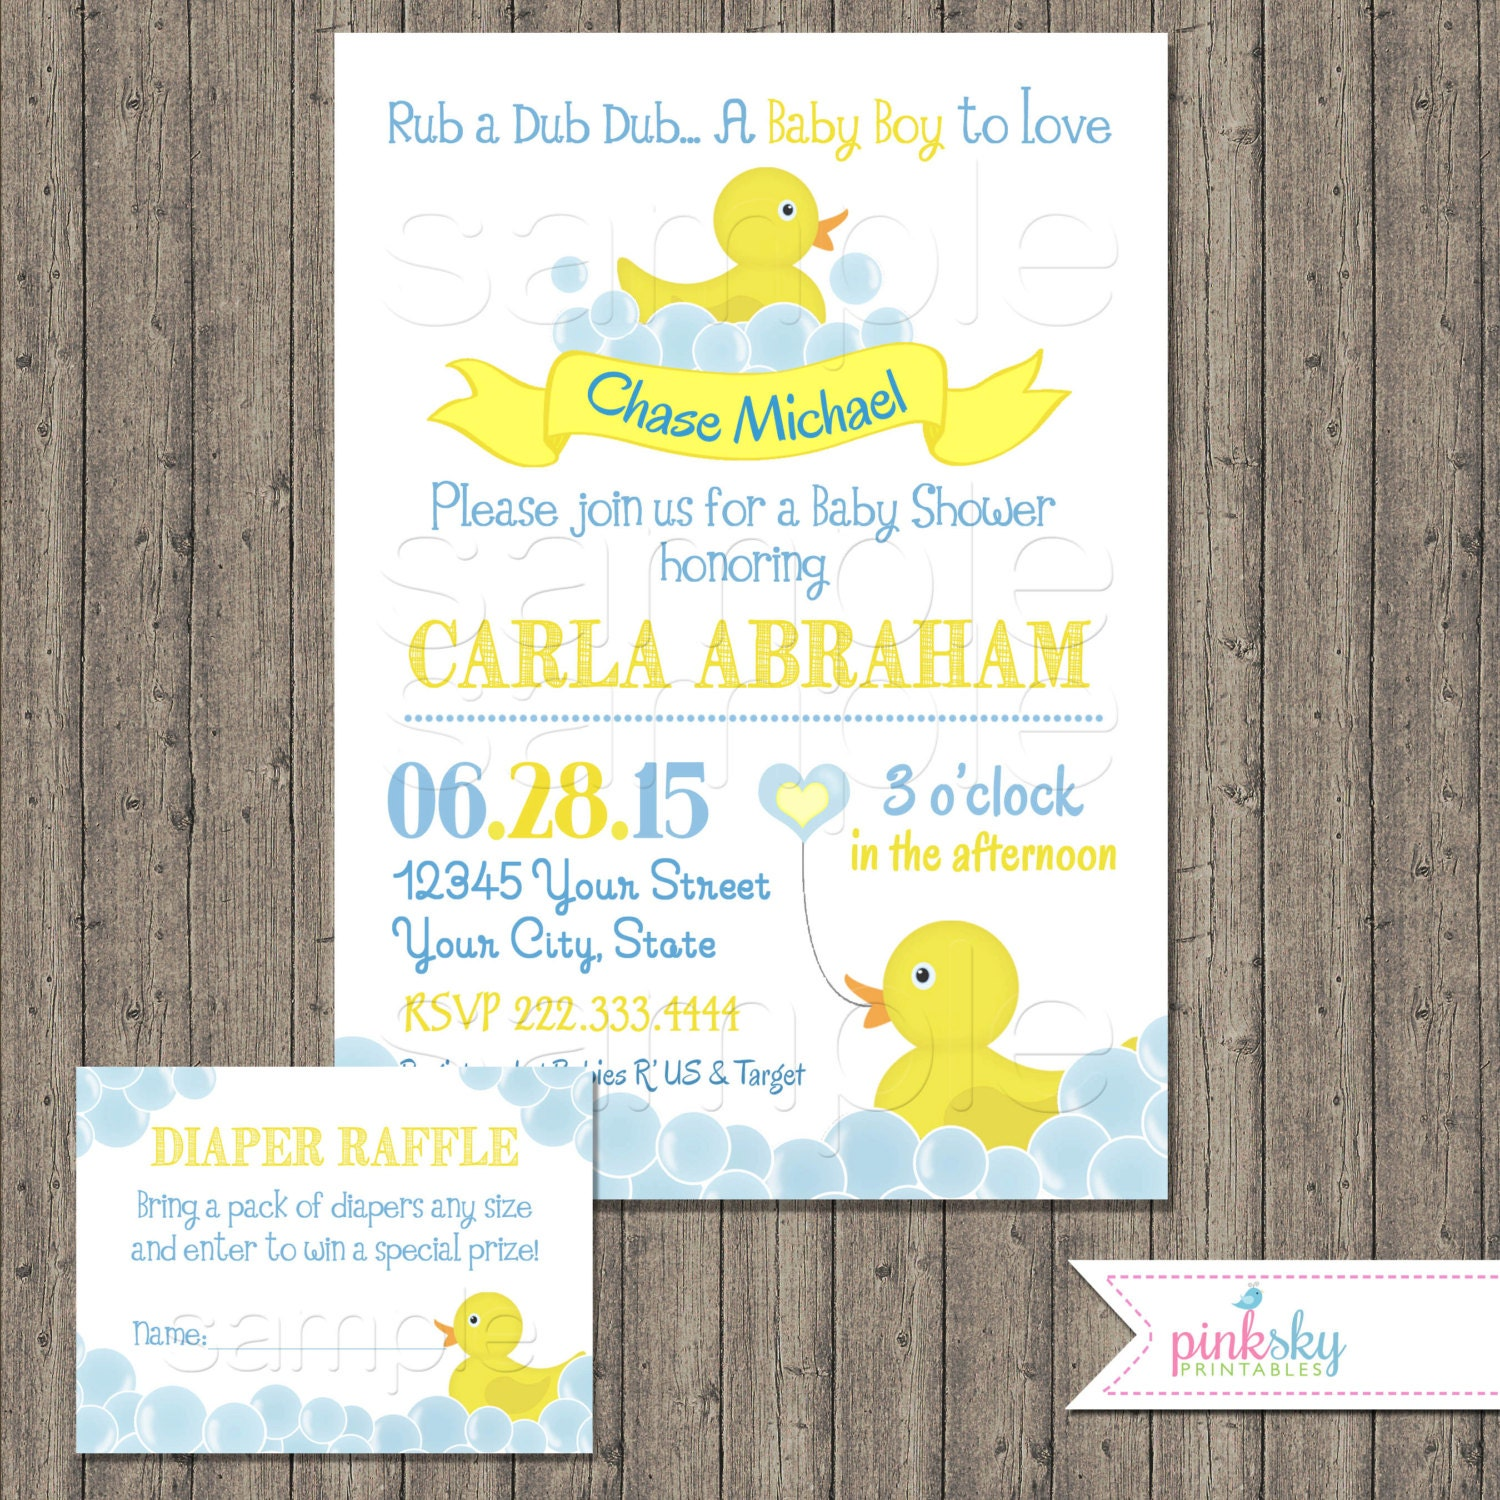 rubber ducky baby shower invitation with free diaper raffle